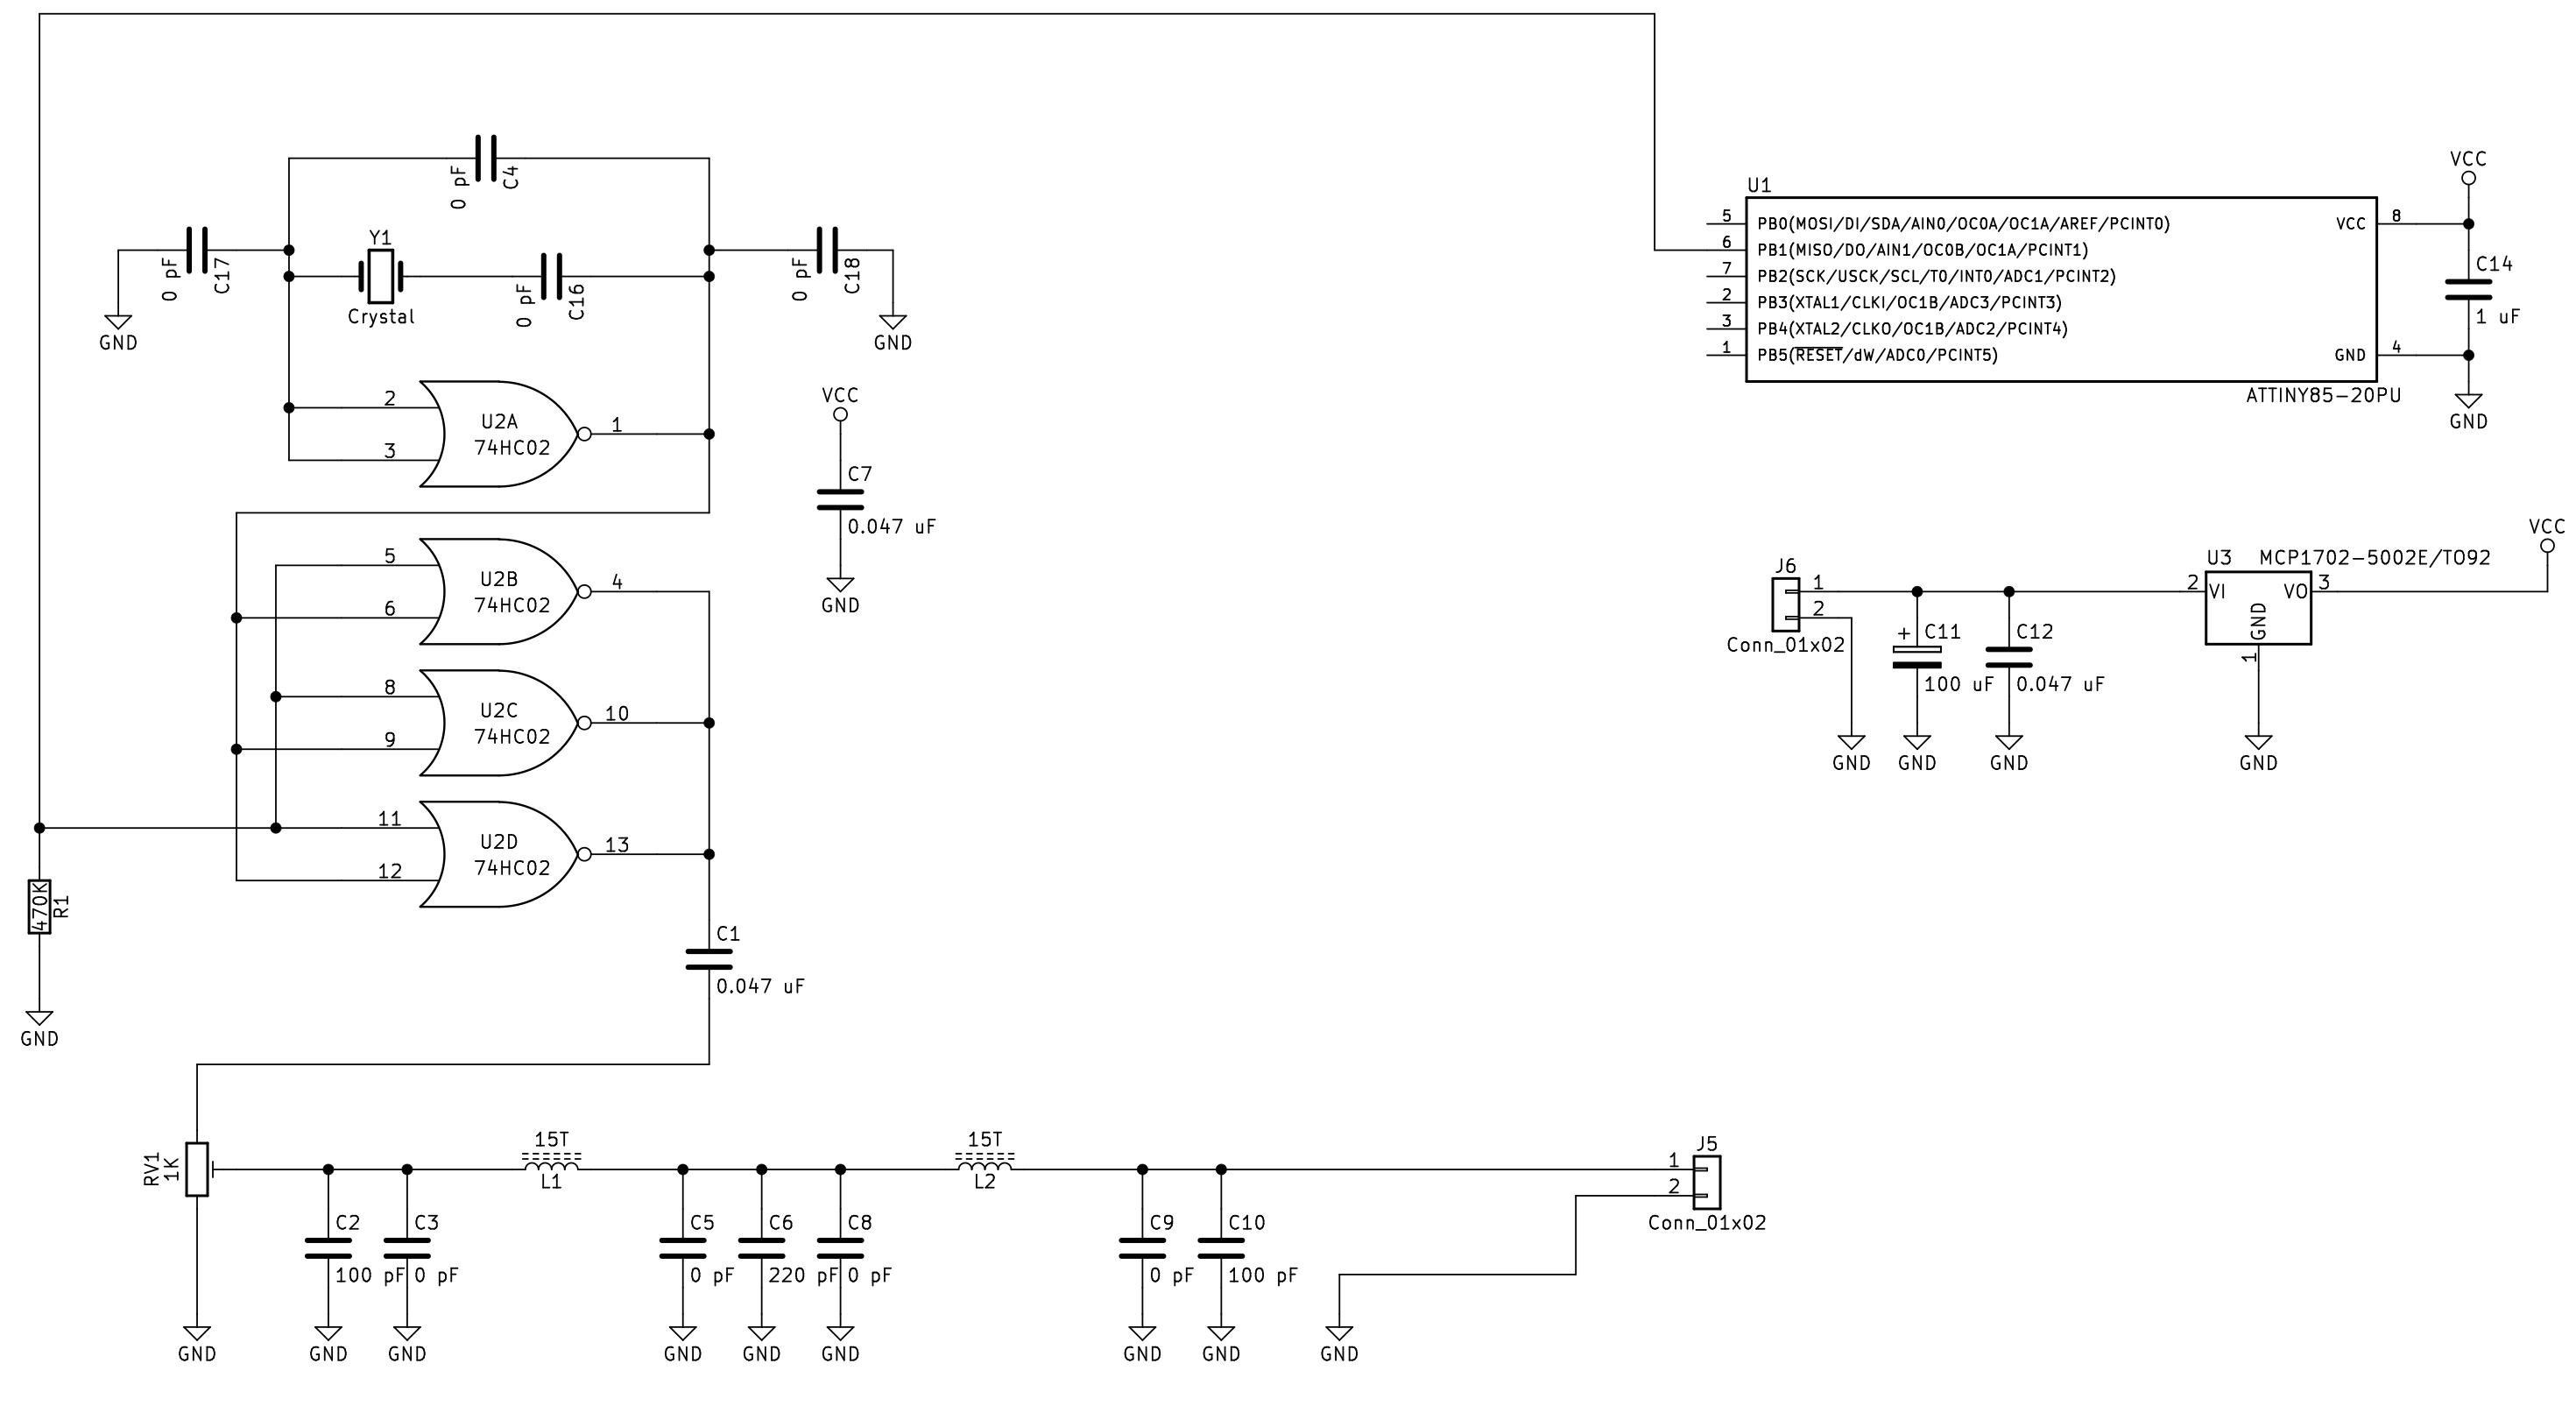 Below is the schematic. Click on it to view full sized: